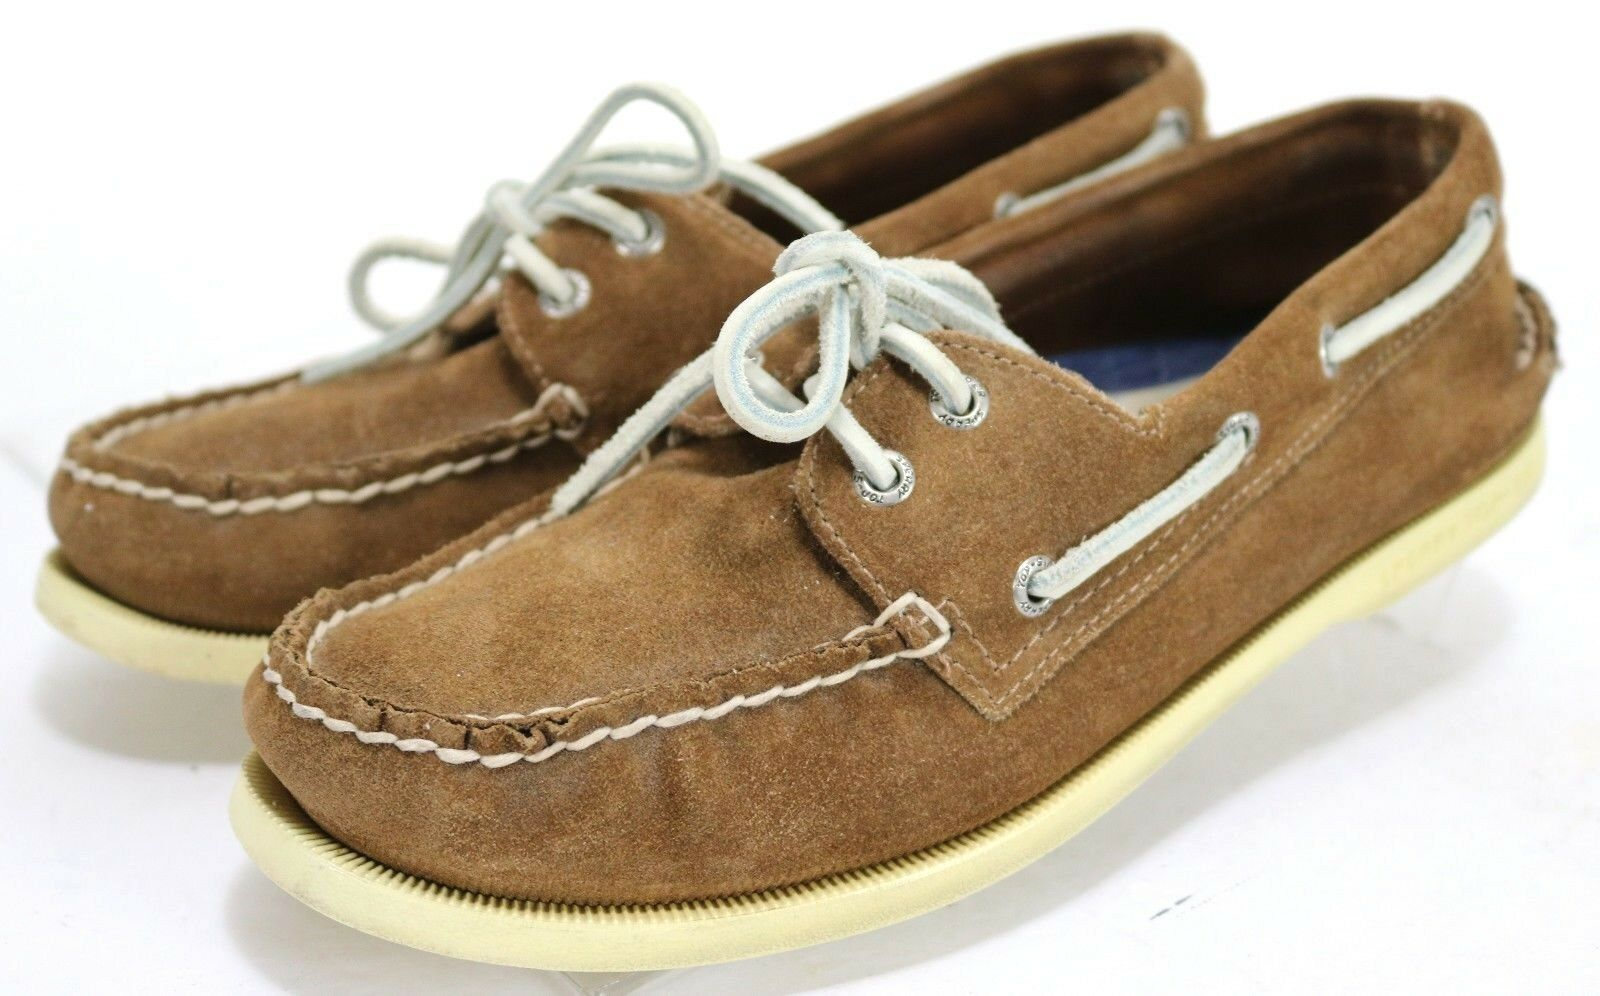 Sperry Top-Sider Men's  2-Eye Boat shoes Size 8.5 Suede Leather Brown